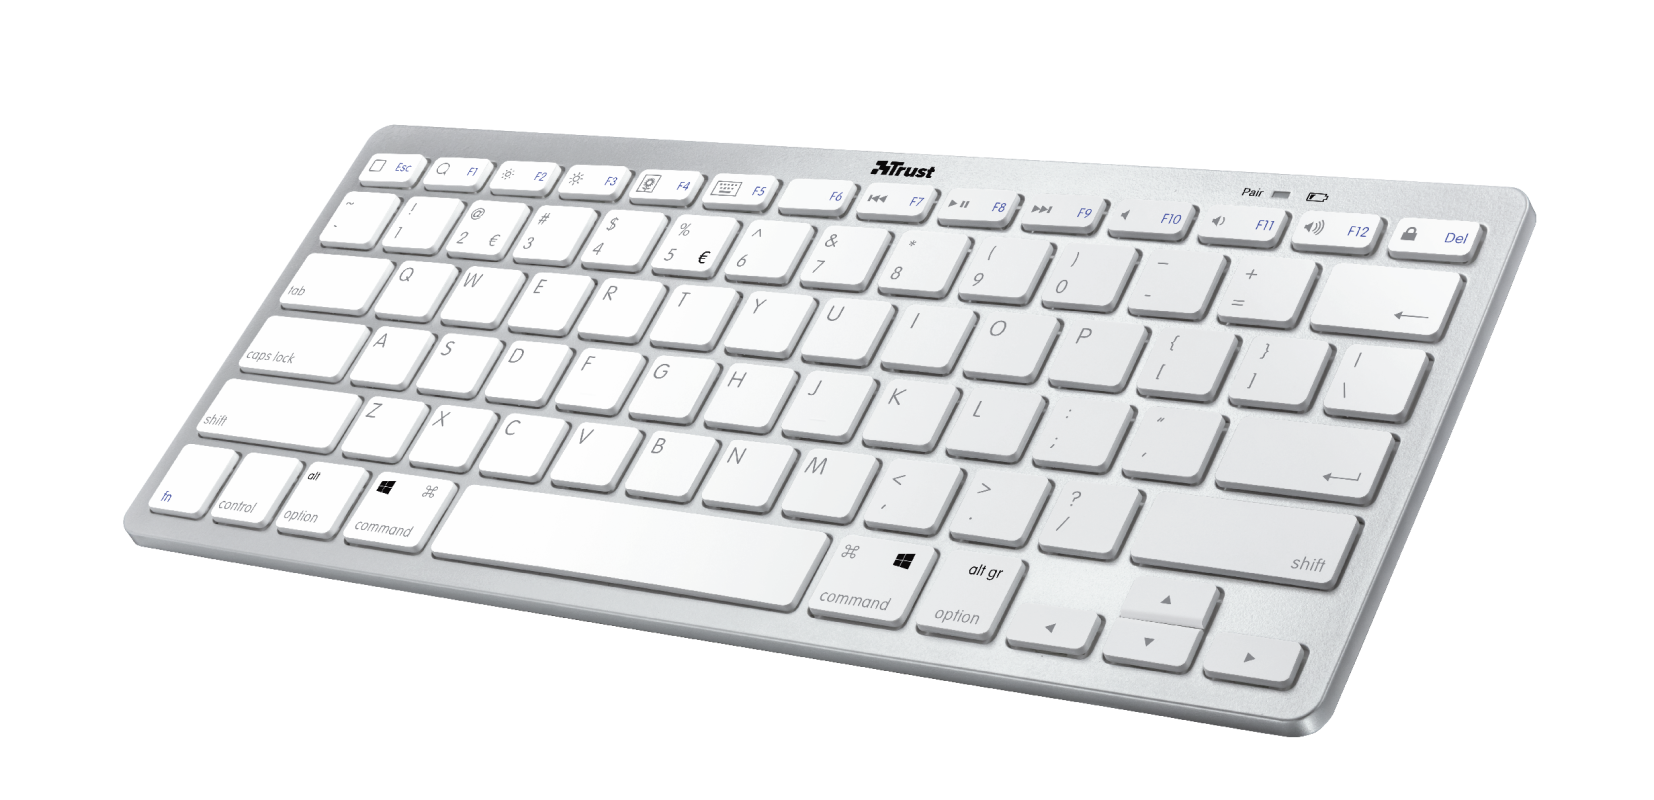 TRUST KEYBOARD WIRELESS BT NADO2 GR